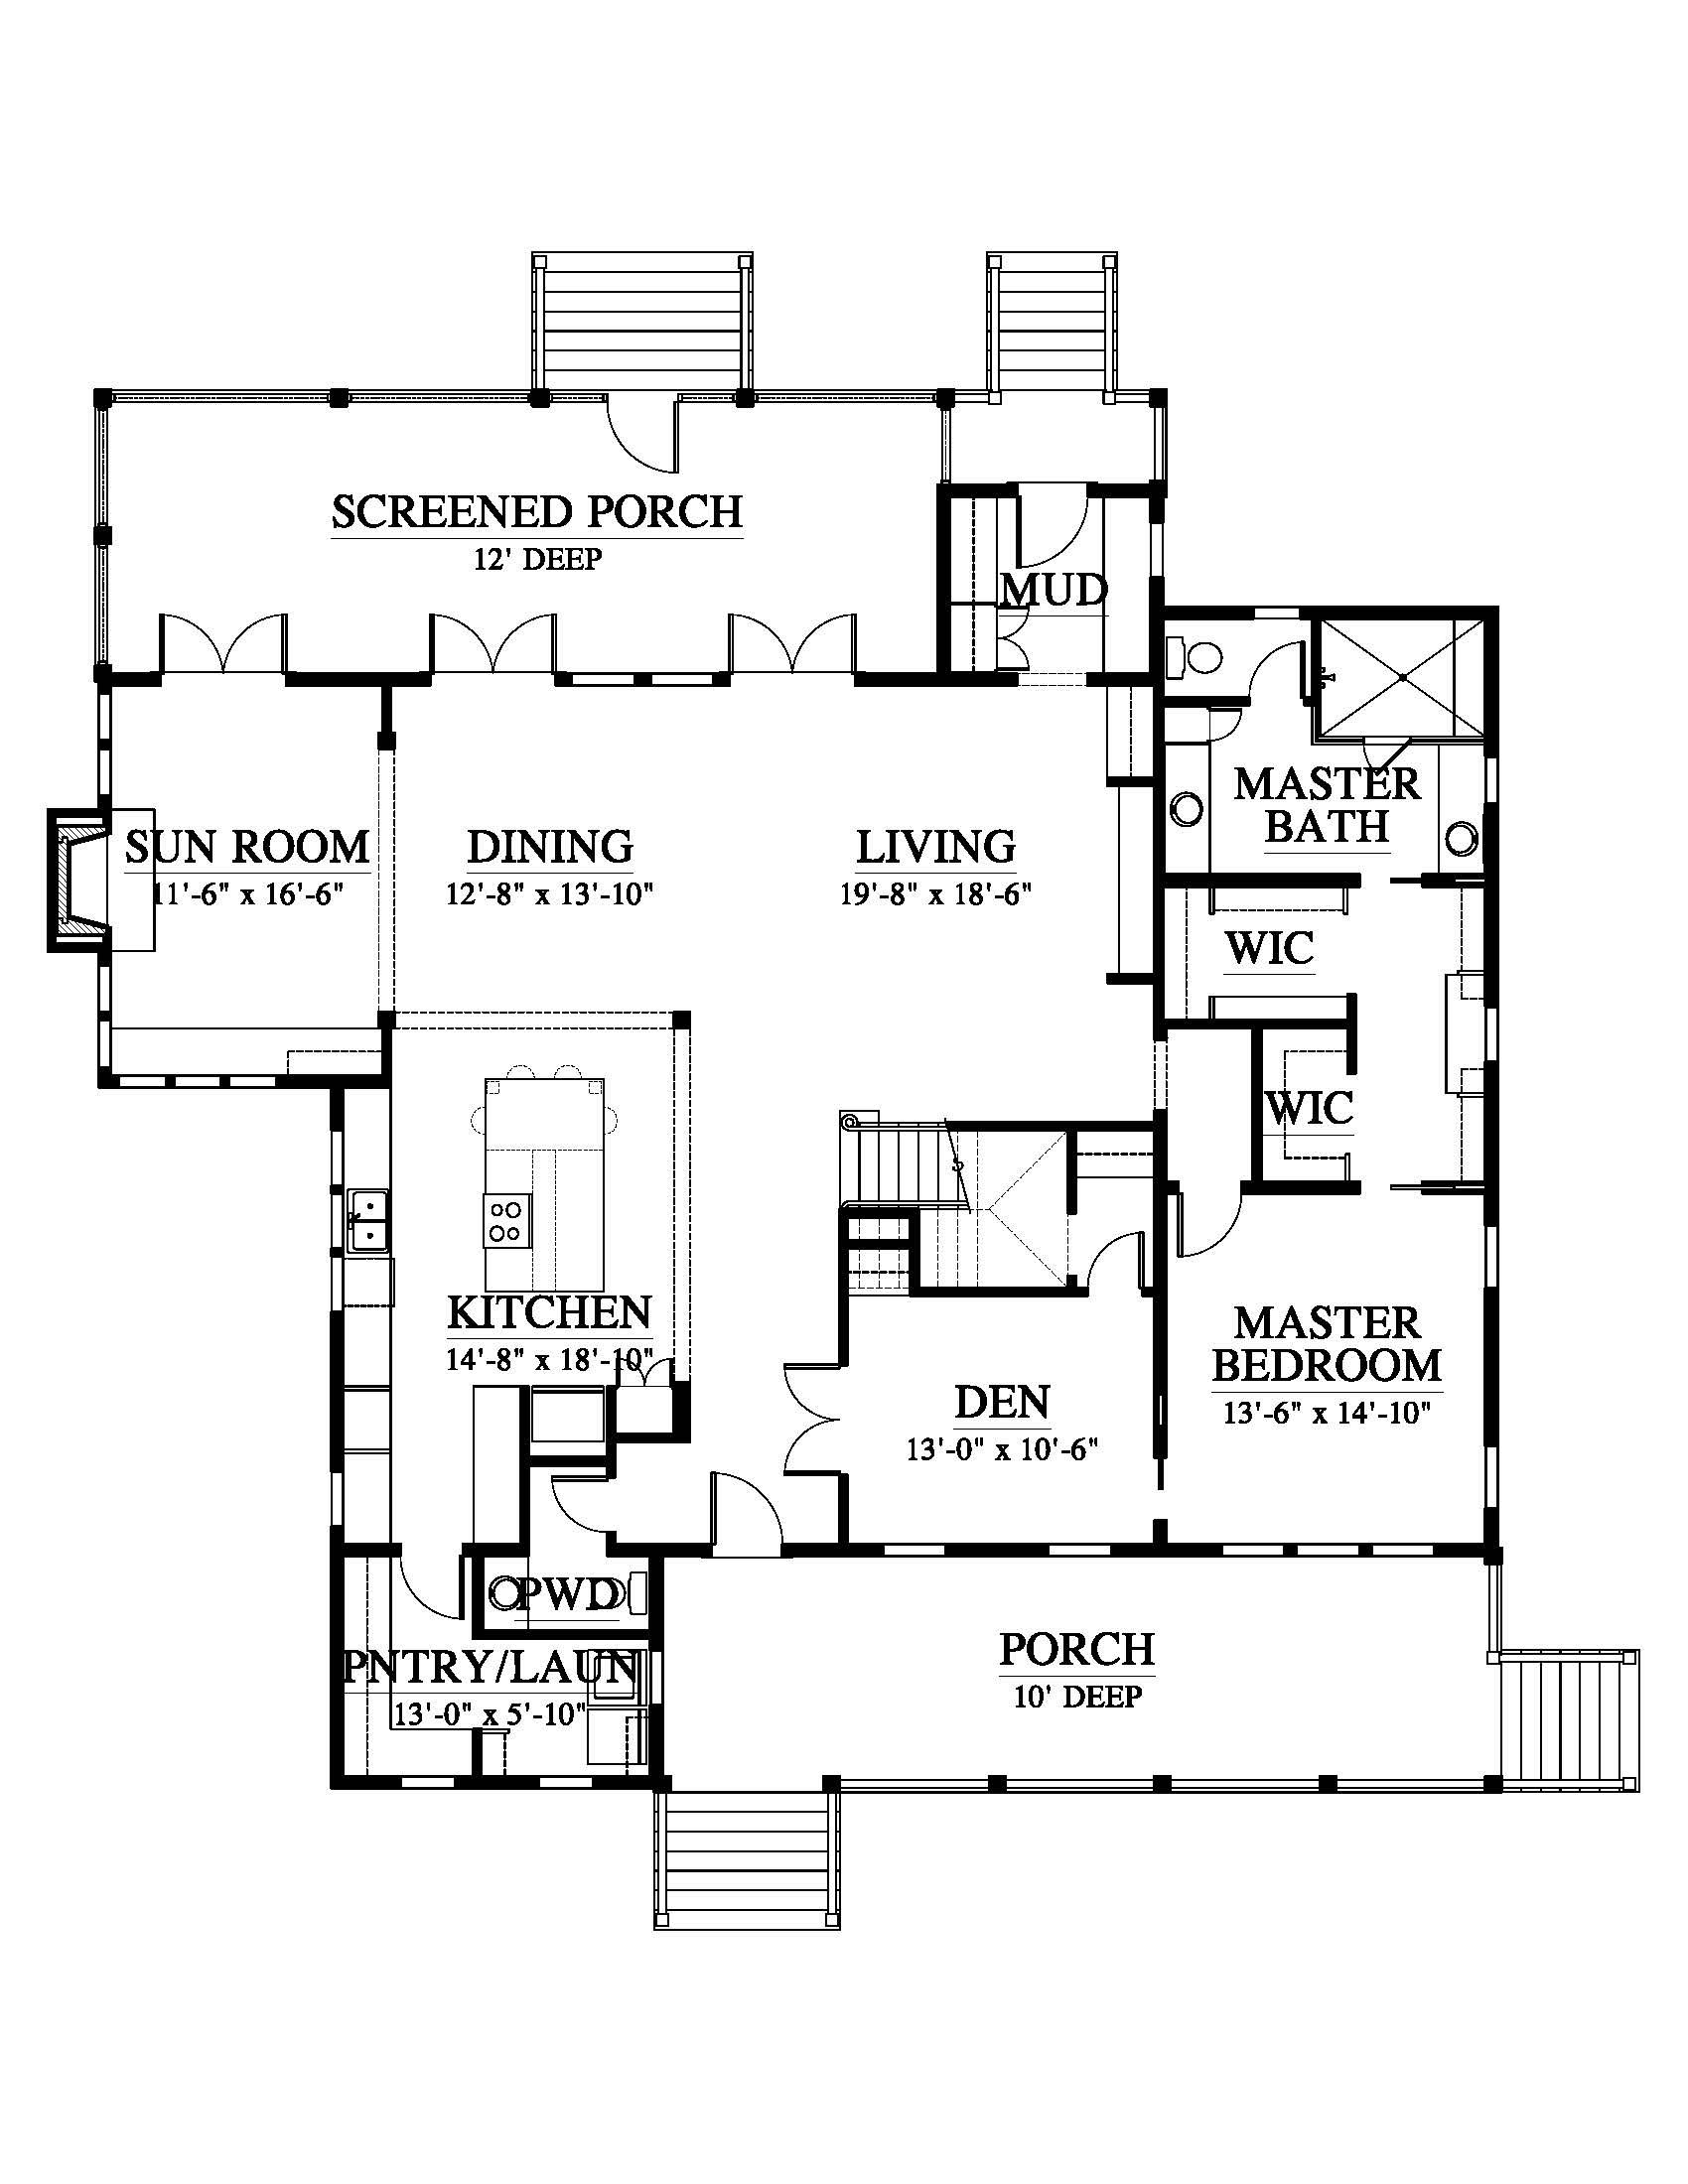 Pleasant Point 153192 House Plan 153192 Design From Allison Ramsey Architects Floor Design Floor Plan Design Floor Plans